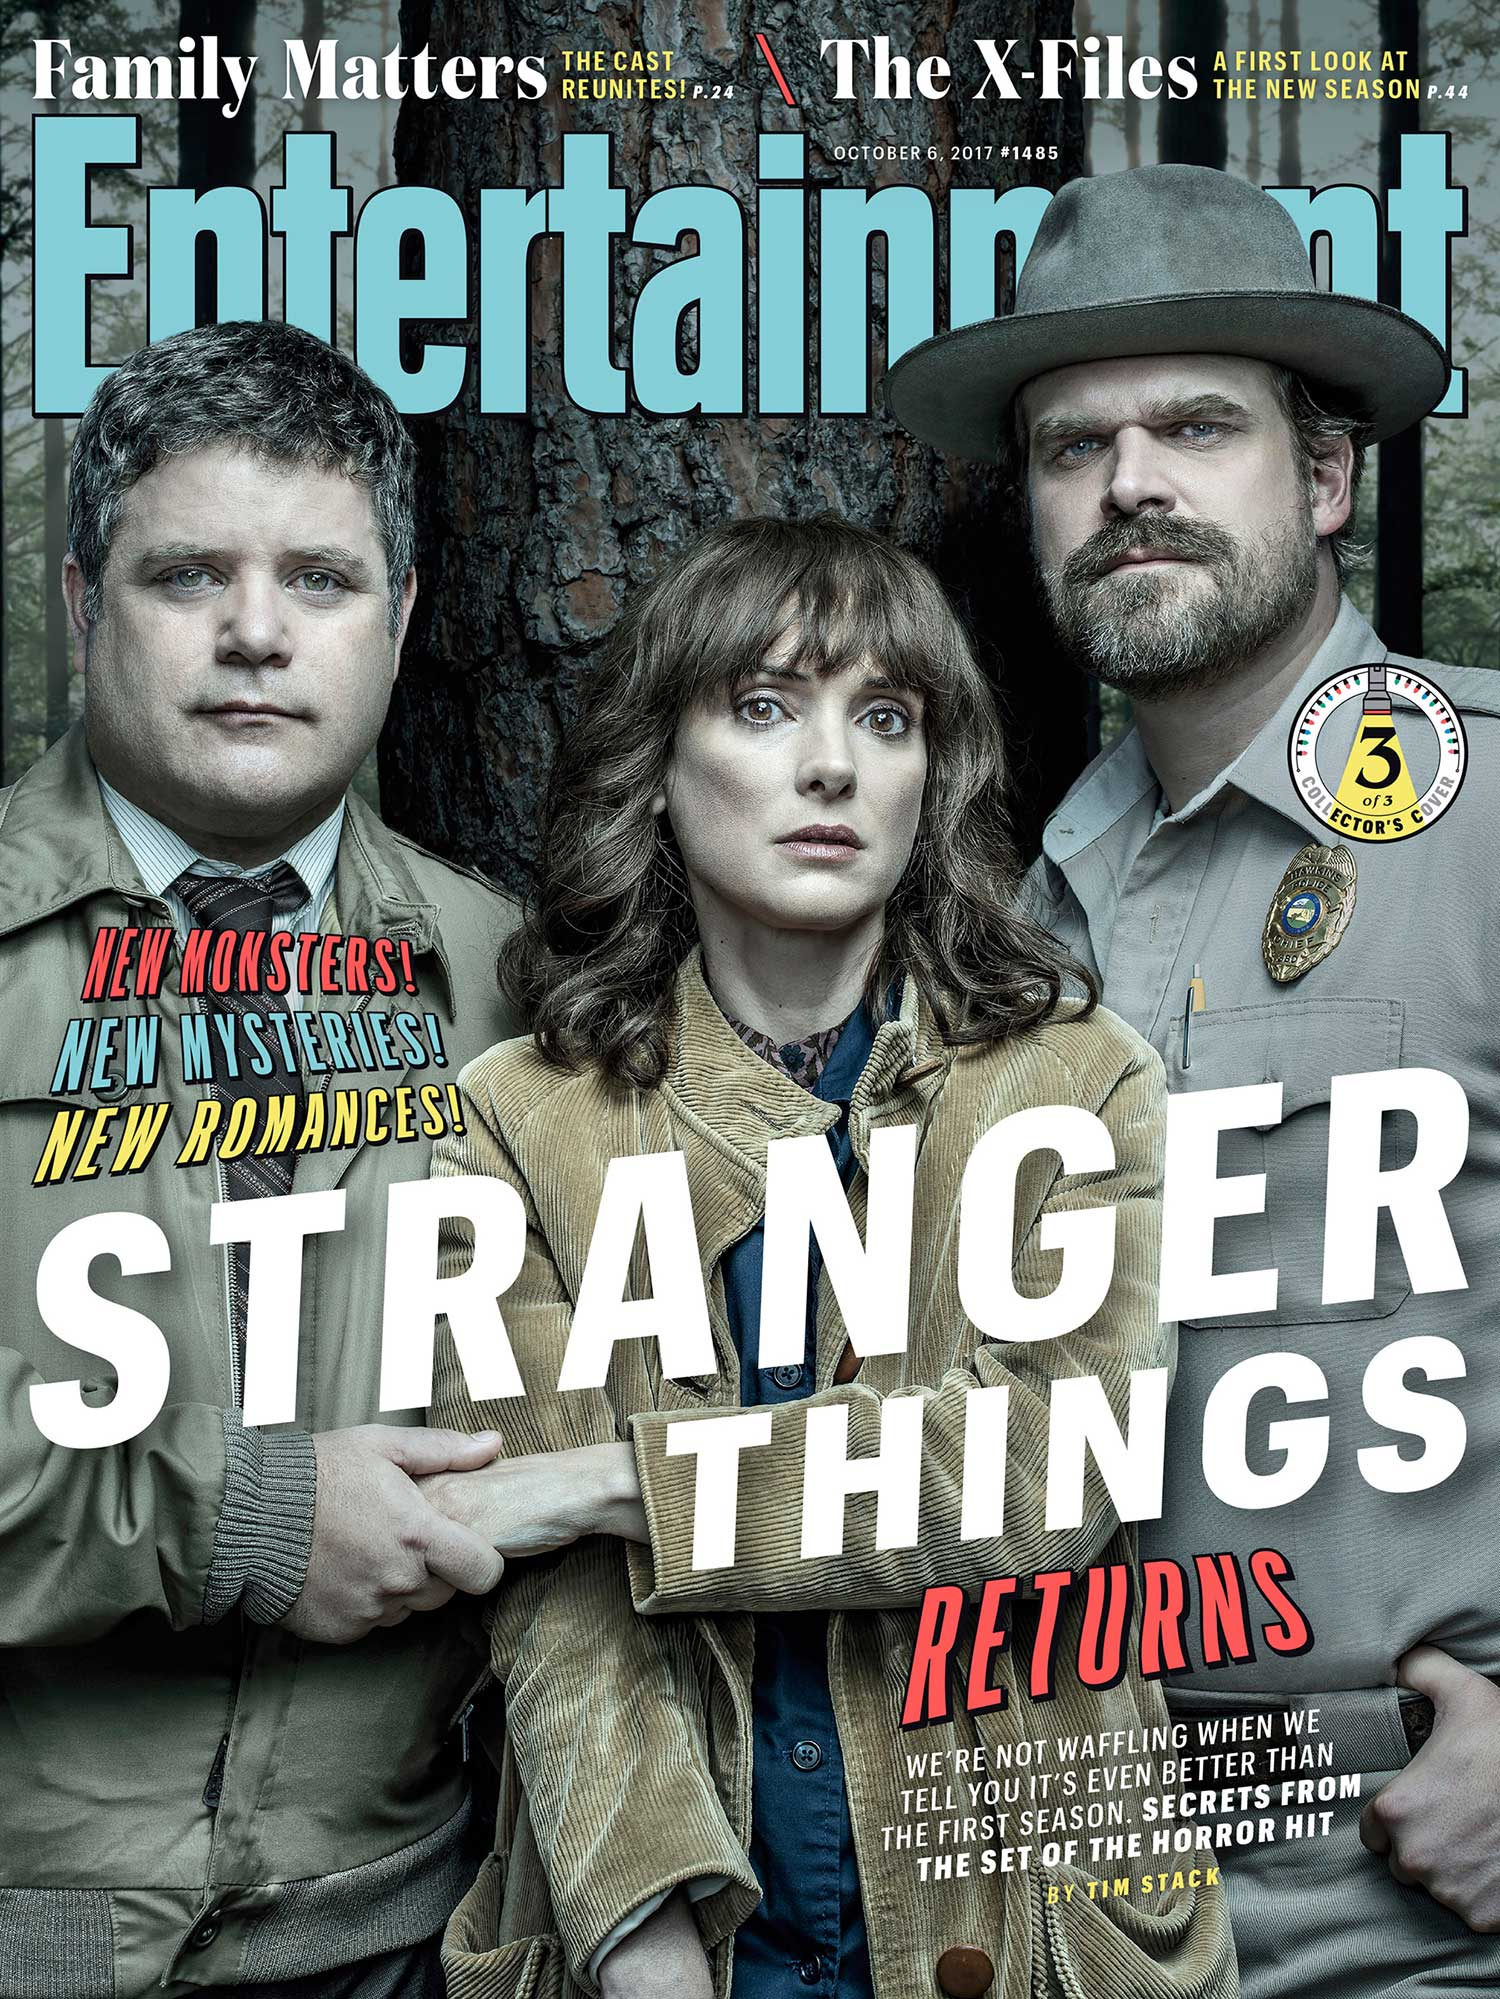 Sean-Astin-Winona-Ryder-Stranger-Things-David-Harbour-EW-Cover